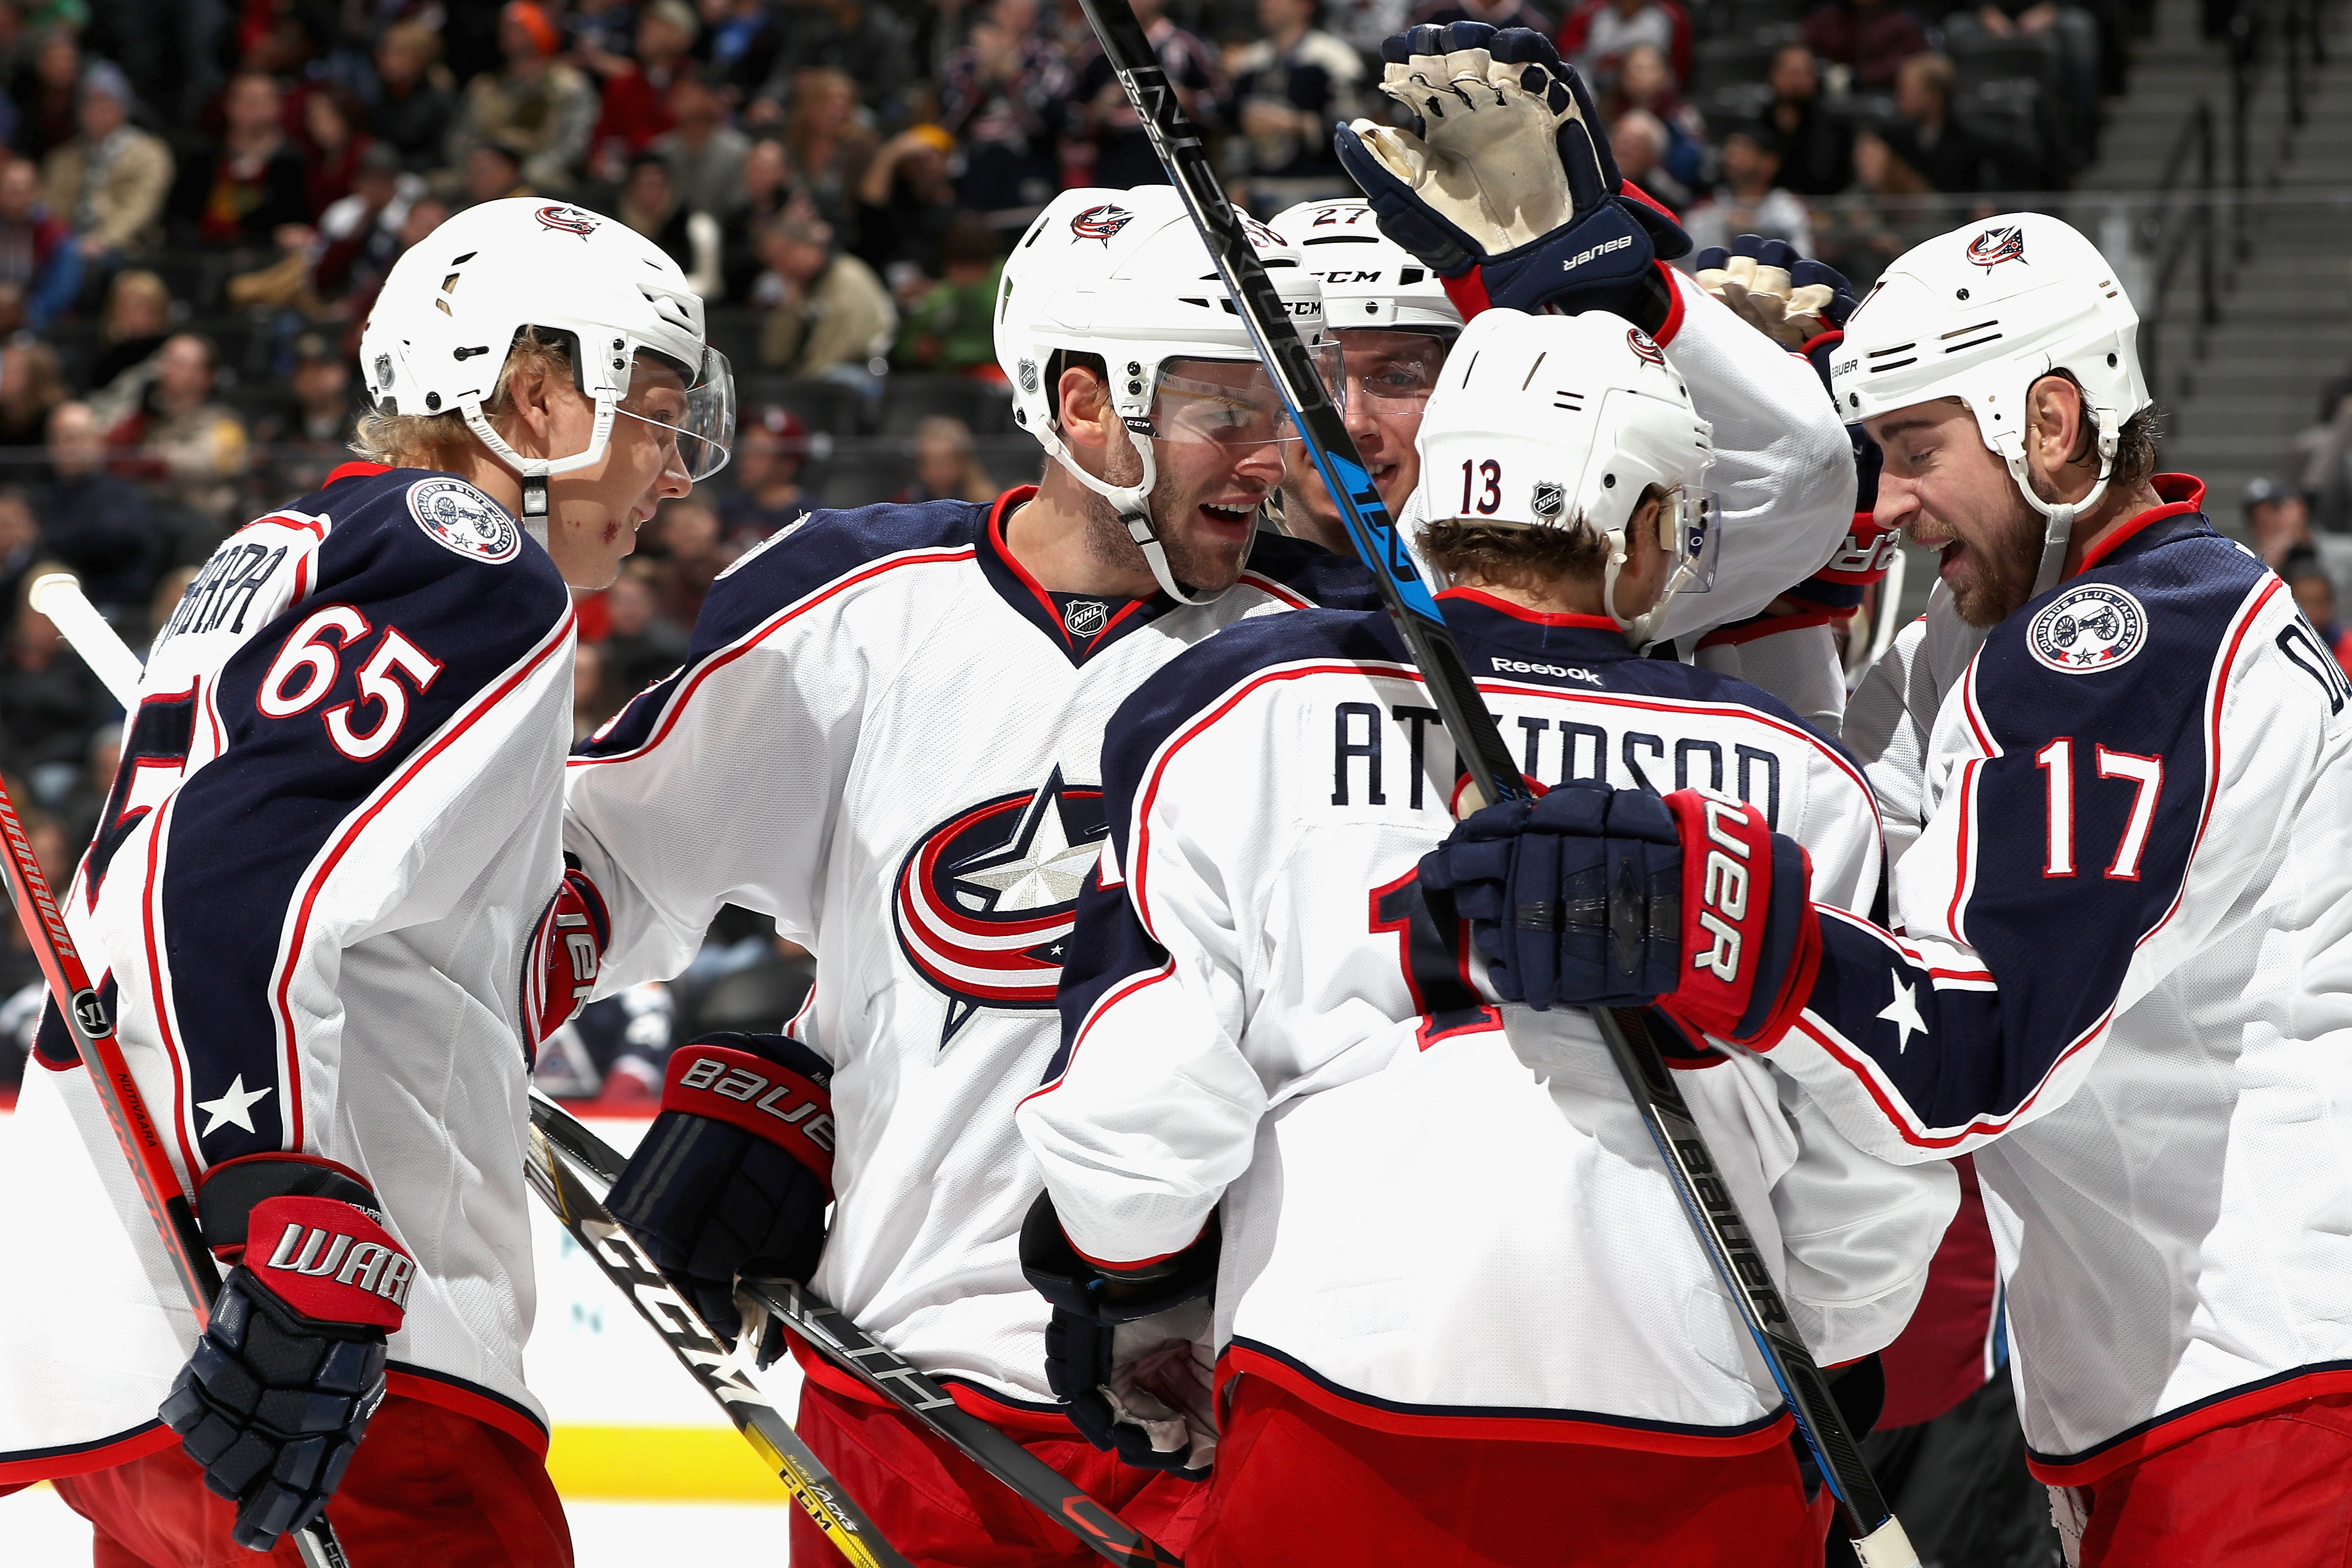 Nhl Columbus Blue Jackets Roster Statscan - Jackets In My Home